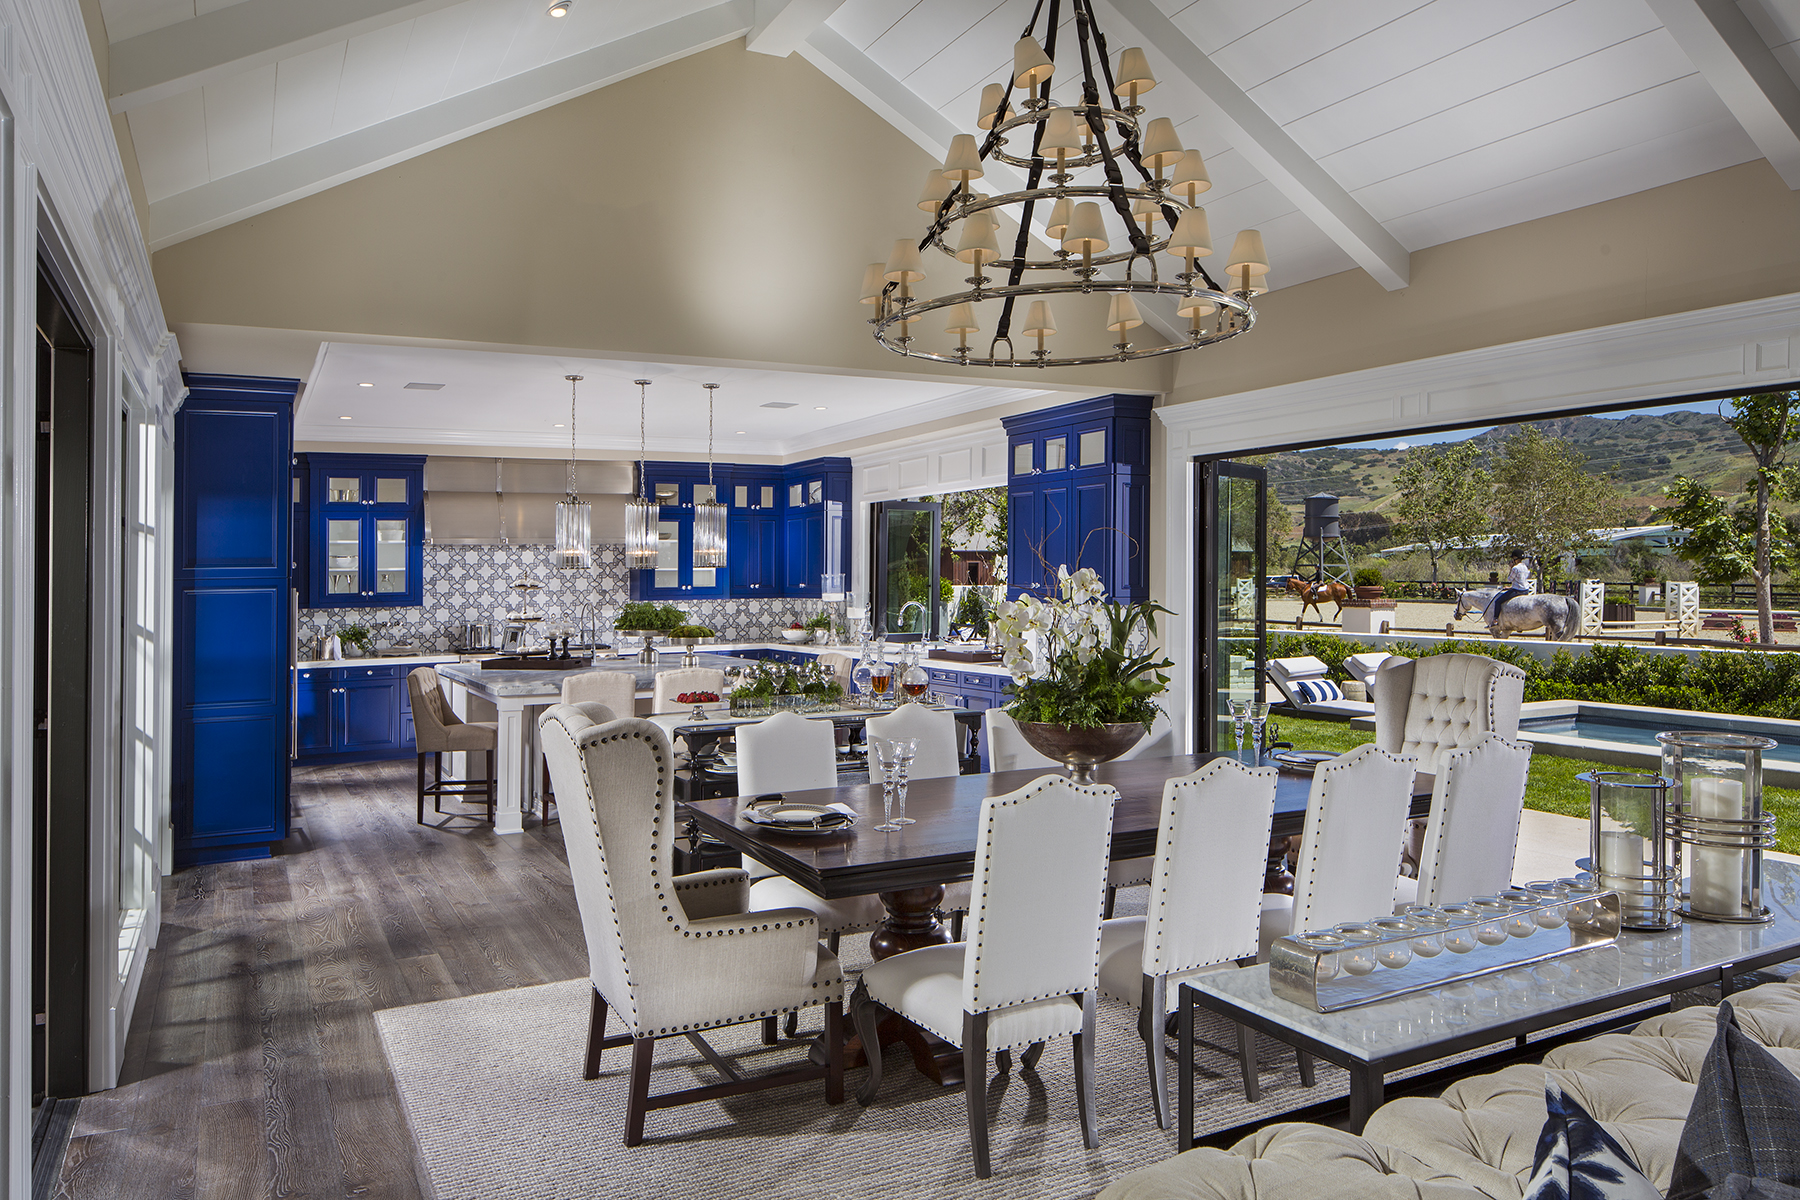 1624-01_PL3_Kitchen_The_Oaks_DavidsonCommunities_EricFiggePhotos-2-1.jpg